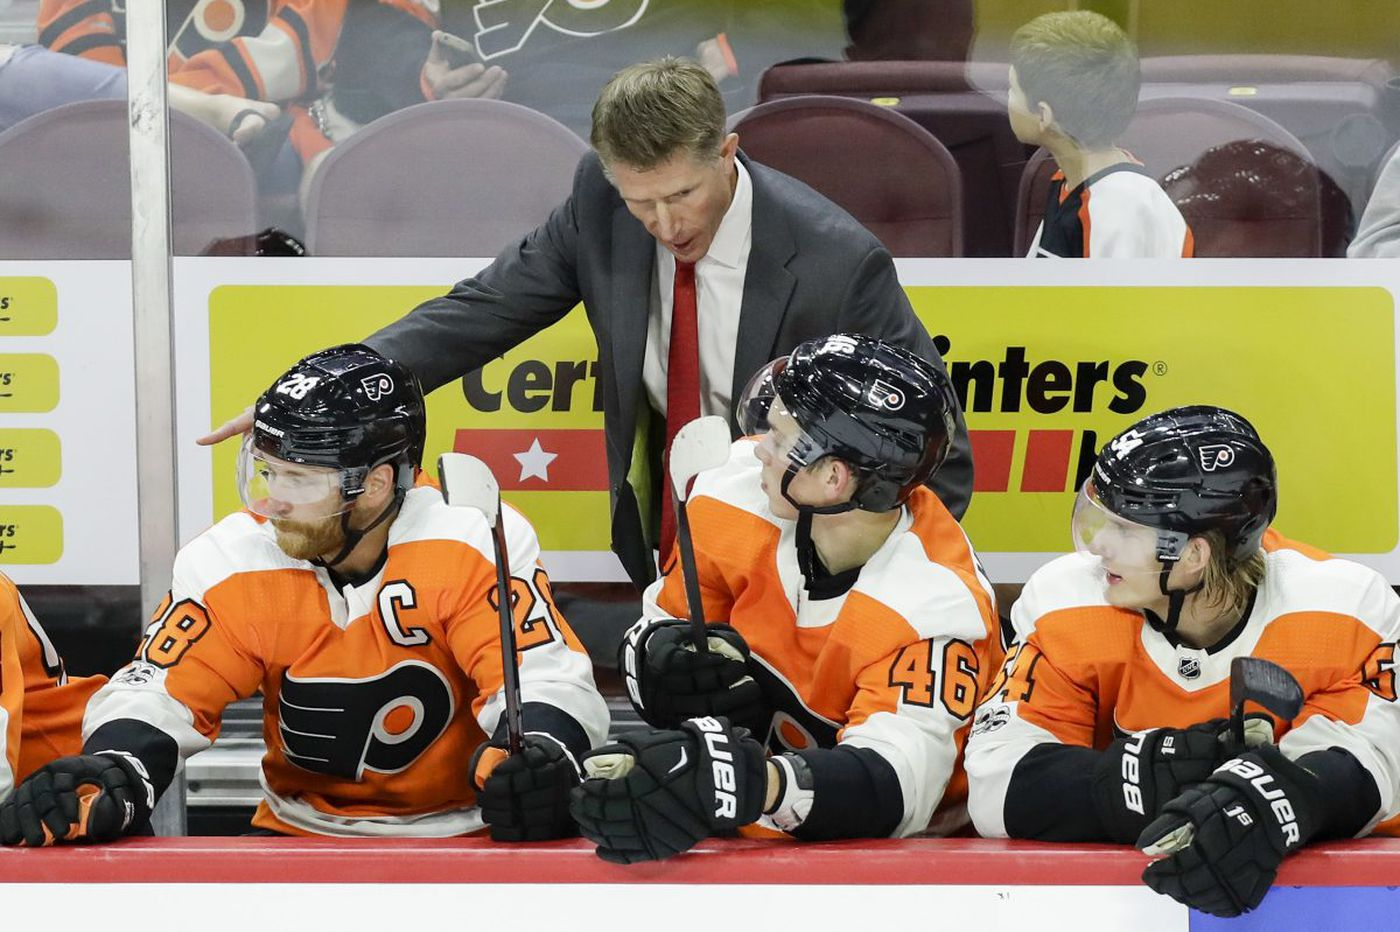 Flyers' surge up standings fueled by better play at ends of games